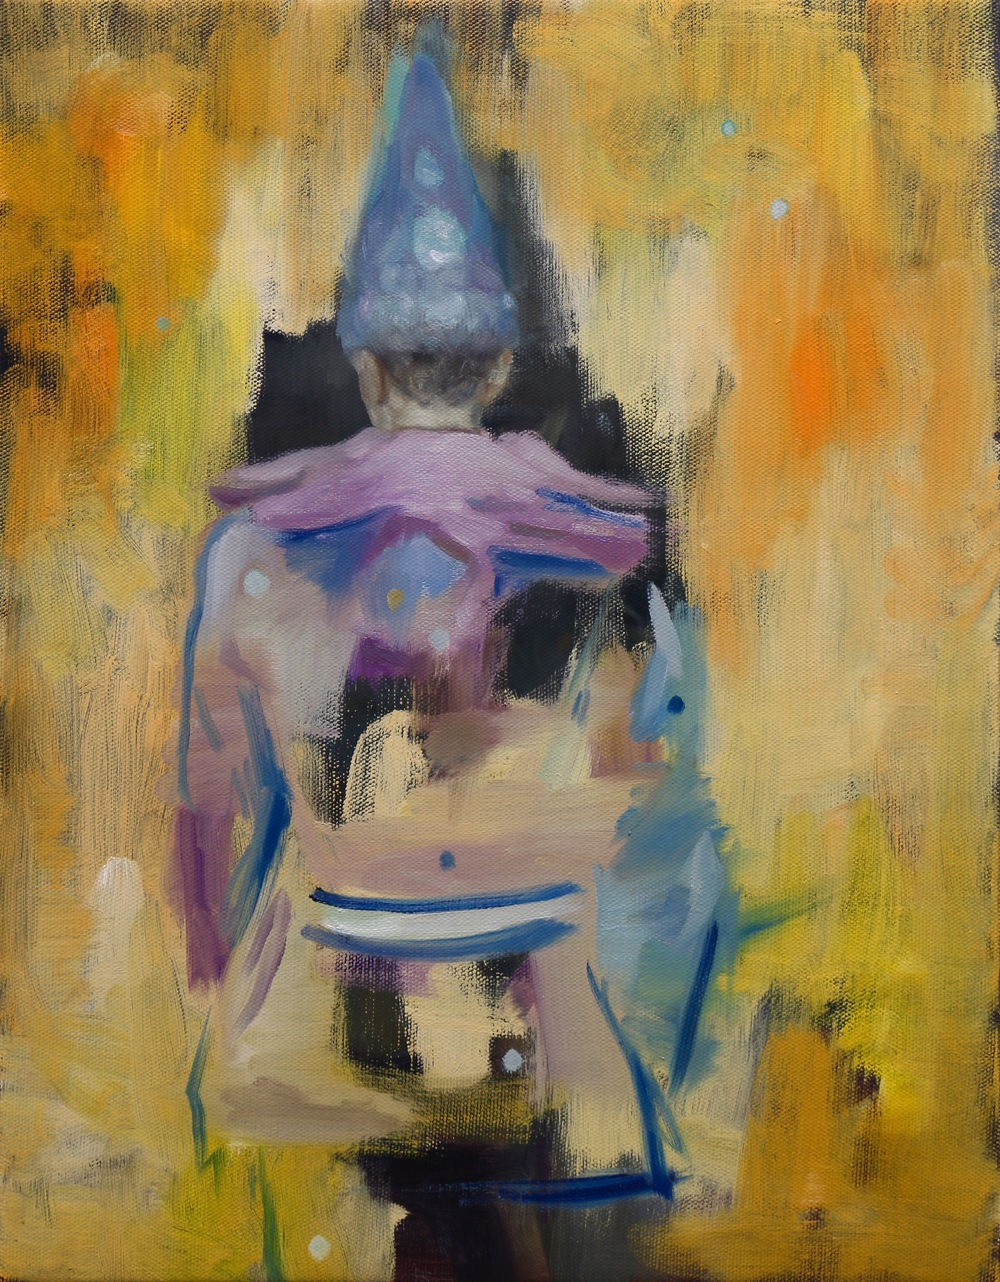 The Yellow Curtain, Oil on linen, 45 x 35cm, 2015